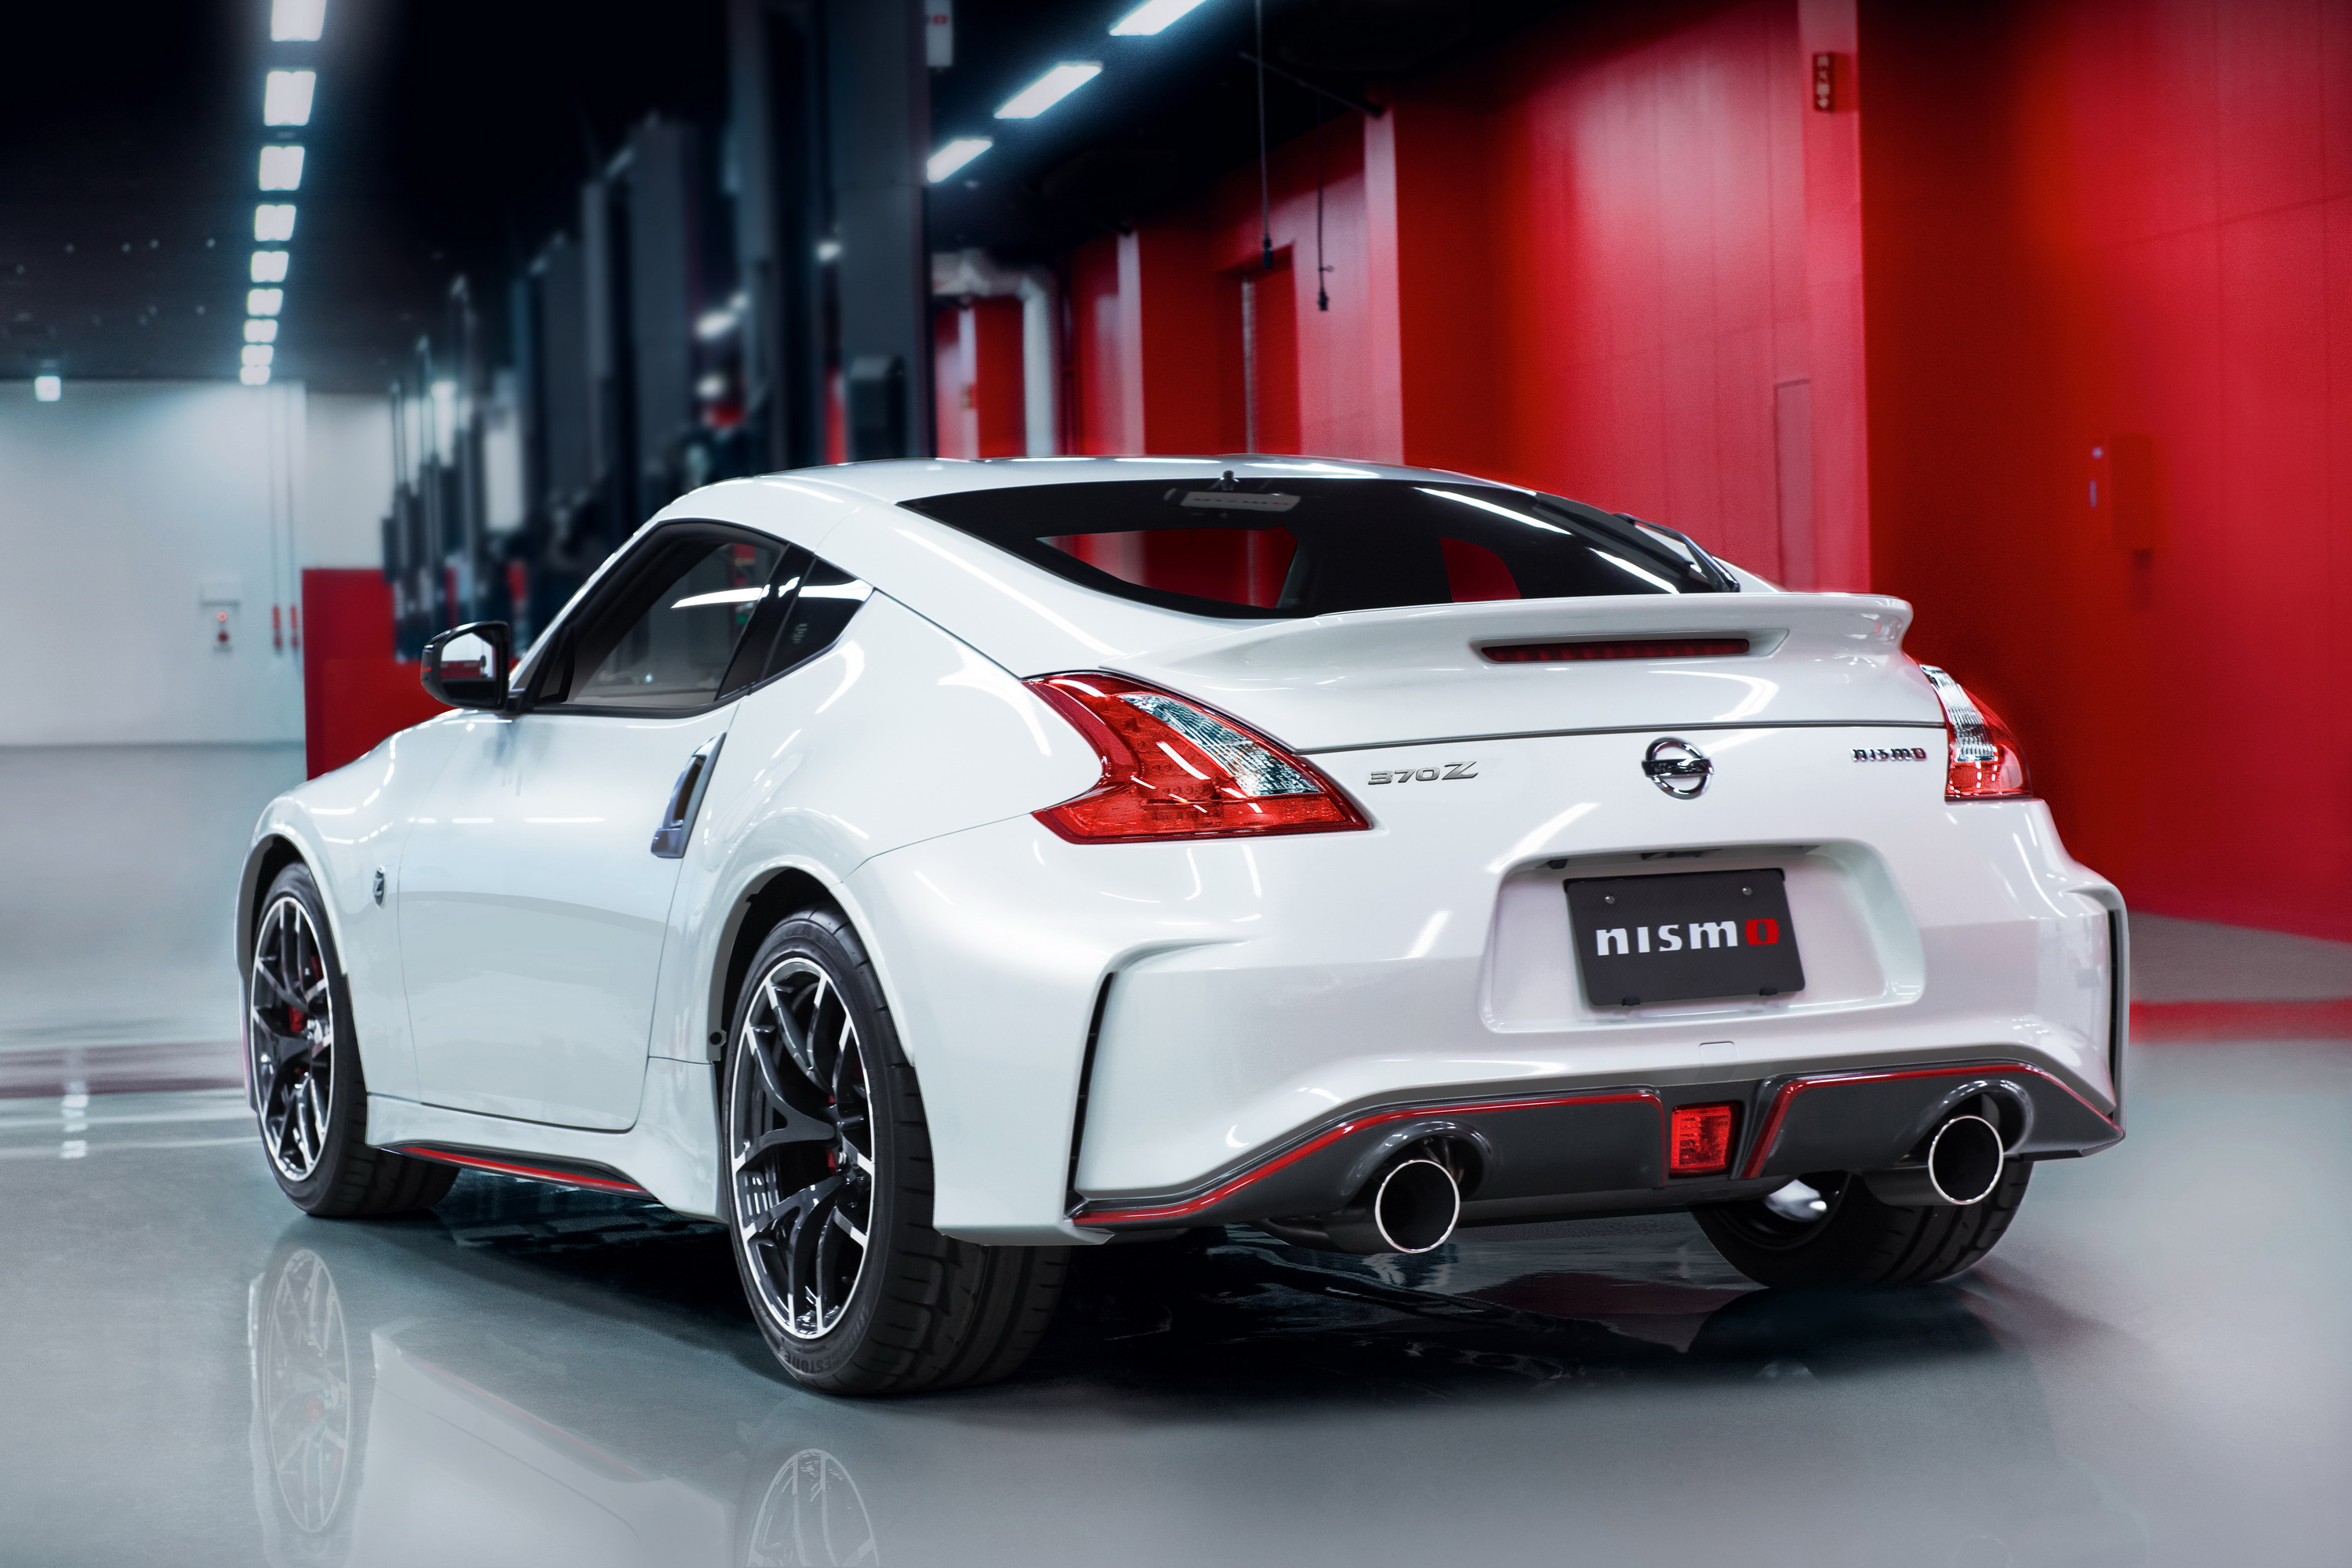 2015 - 2017 Nissan 370Z Nismo | Top Speed